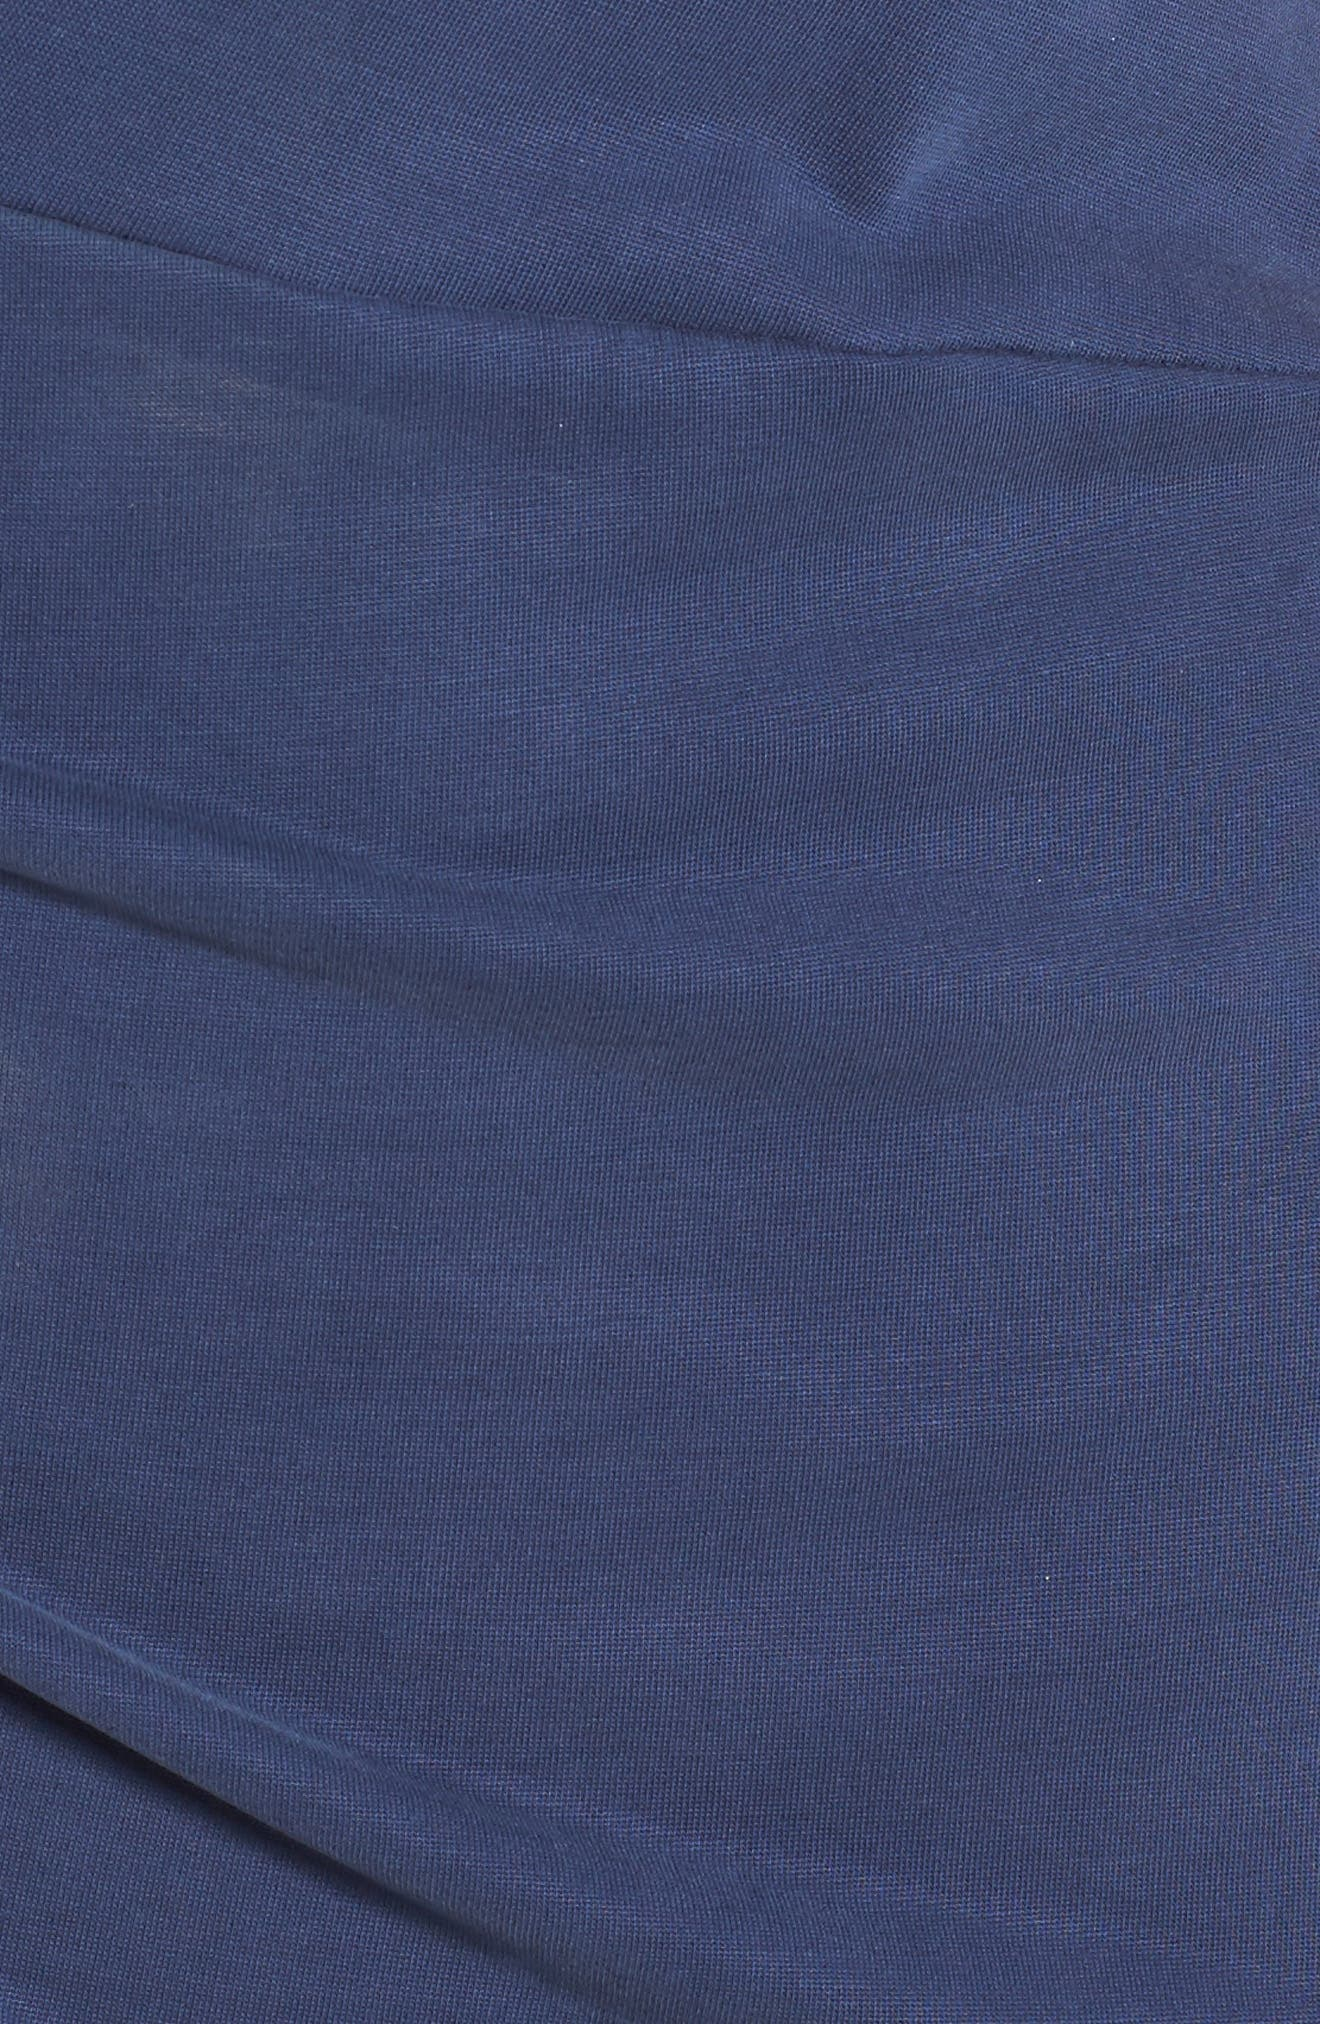 Pleated Body-Con Dress,                             Alternate thumbnail 6, color,